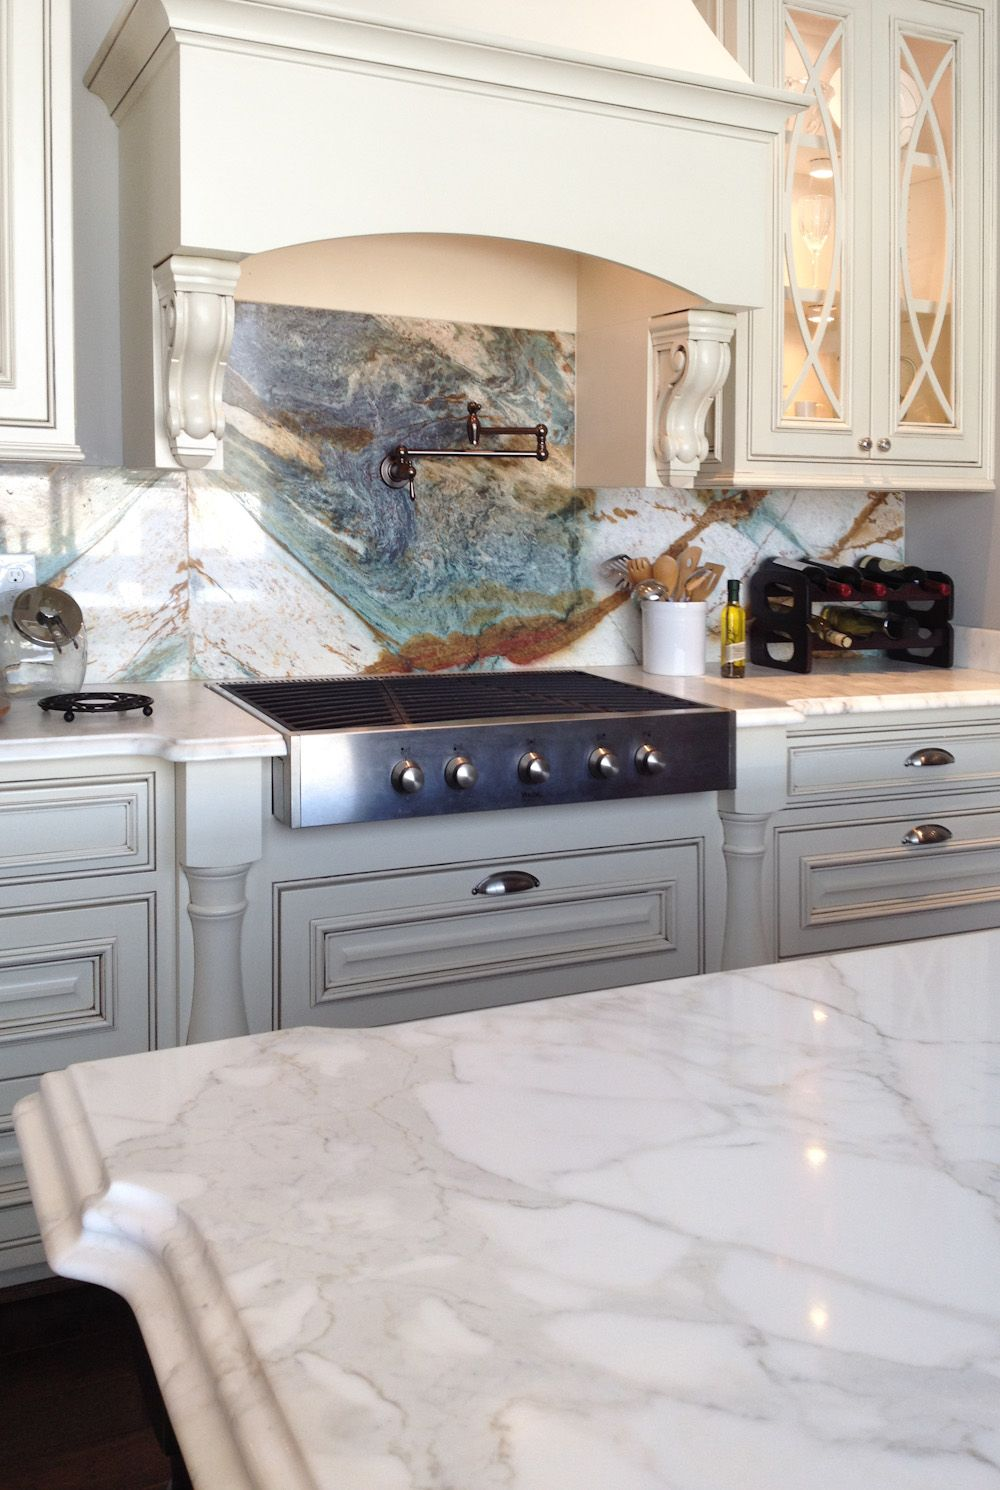 Kitchen Marble Countertops To Use Or Not To Use With Images